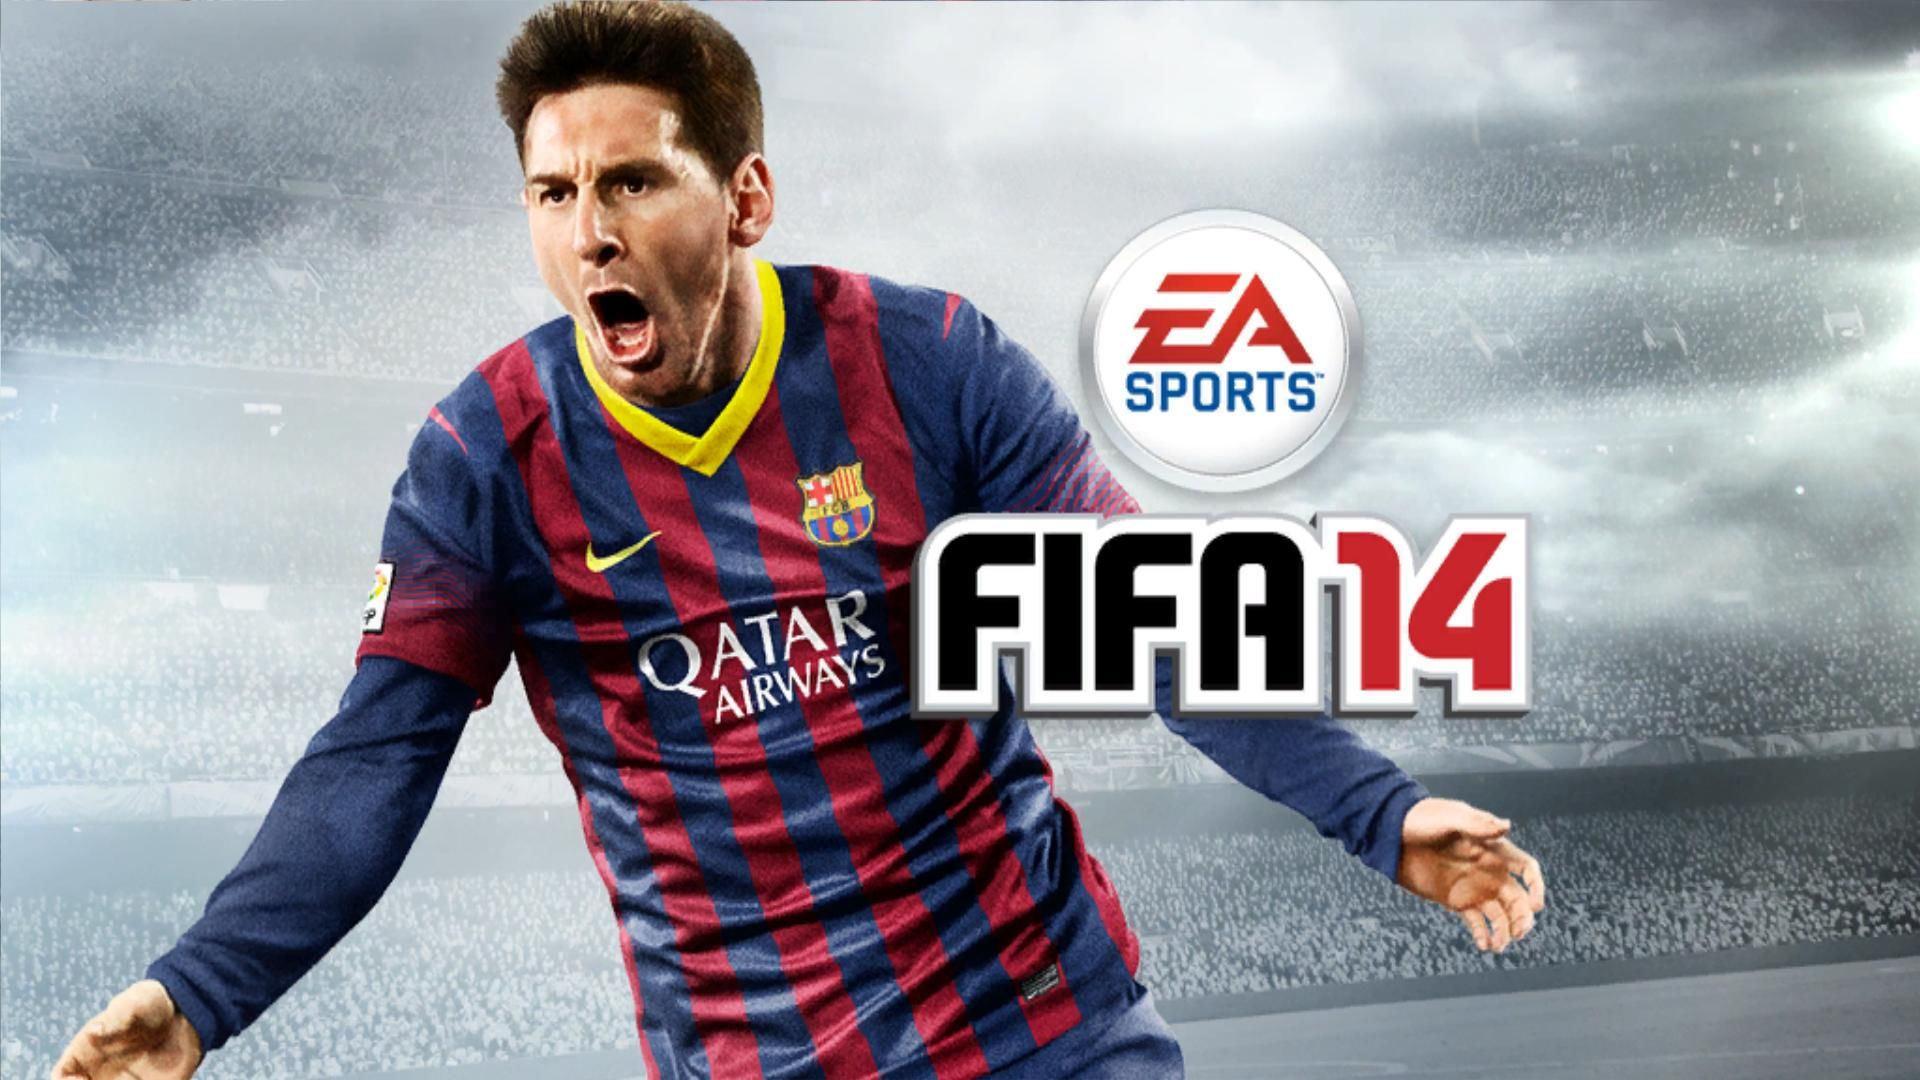 Fifa 14 screenshots for windows mobygames fifa 14 windows title screen demo version voltagebd Image collections